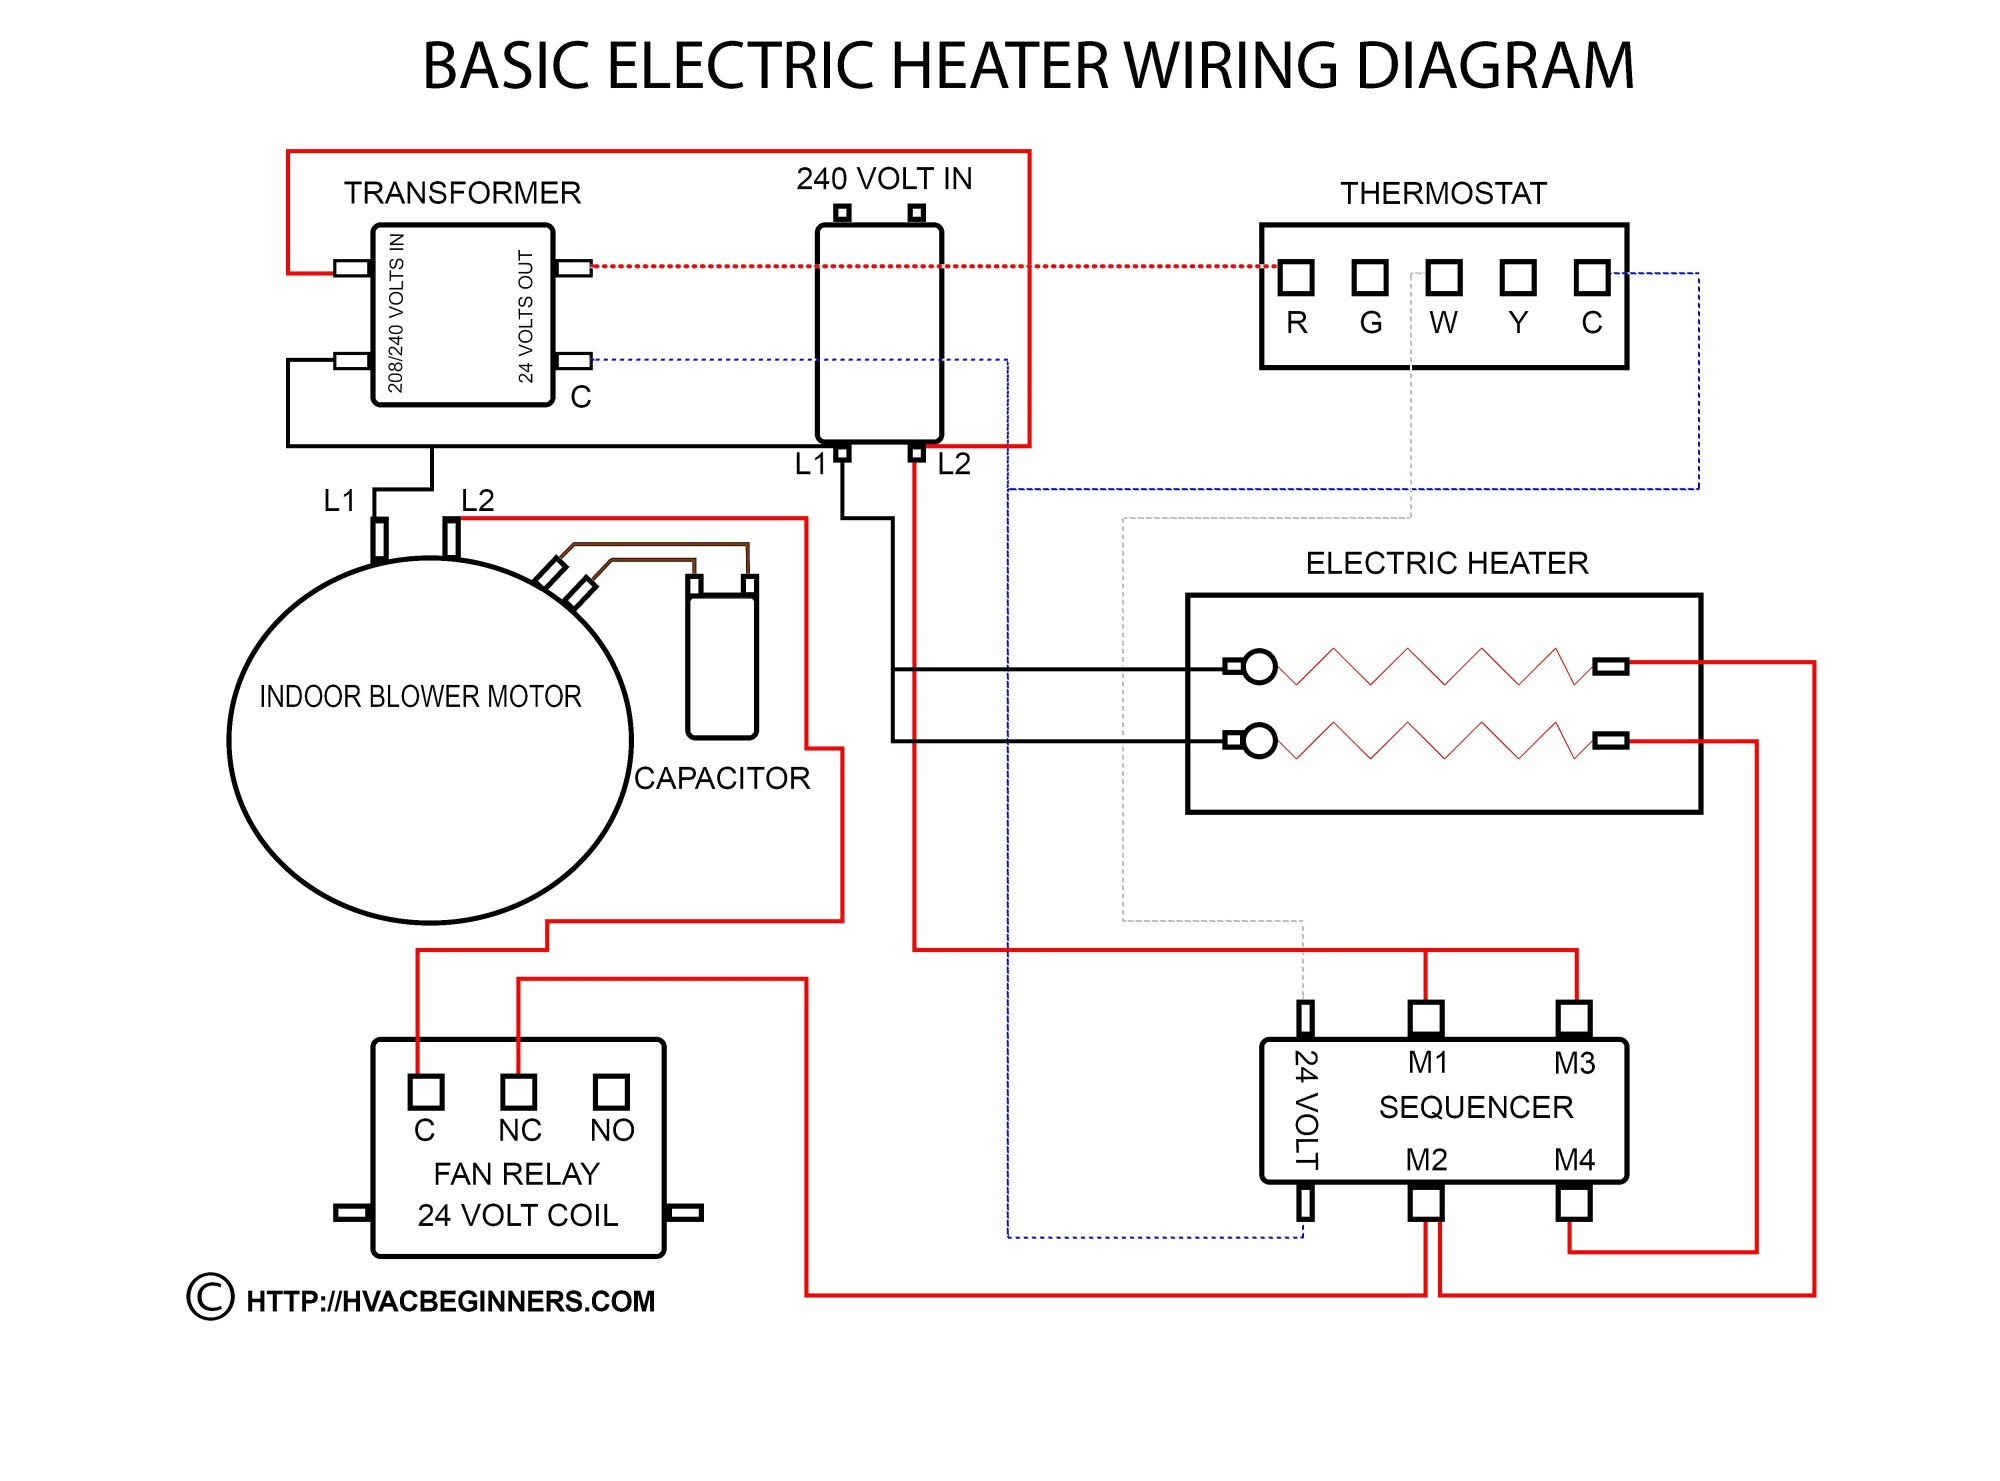 hight resolution of for overhead crane controller wiring diagram best part of wiringac hoist wiring diagram wiring diagram specialtiesac